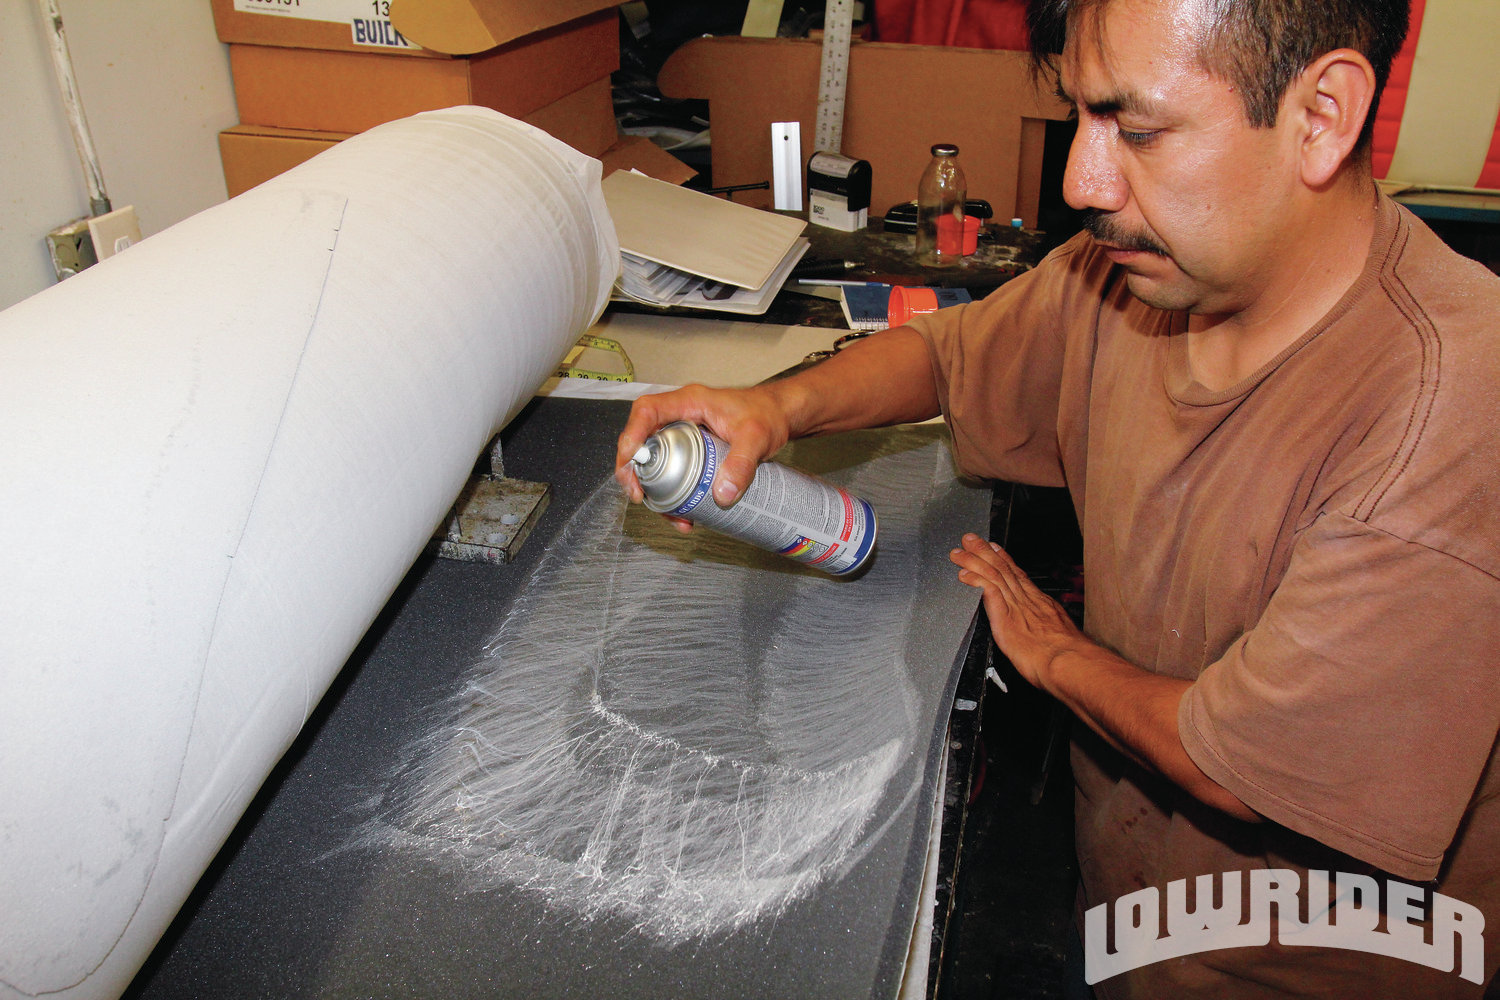 <strong>16</strong>. The backing or foam also needed to have glue sprayed onto it. This will allow the foam panel and leather to make a good bond once it dries.